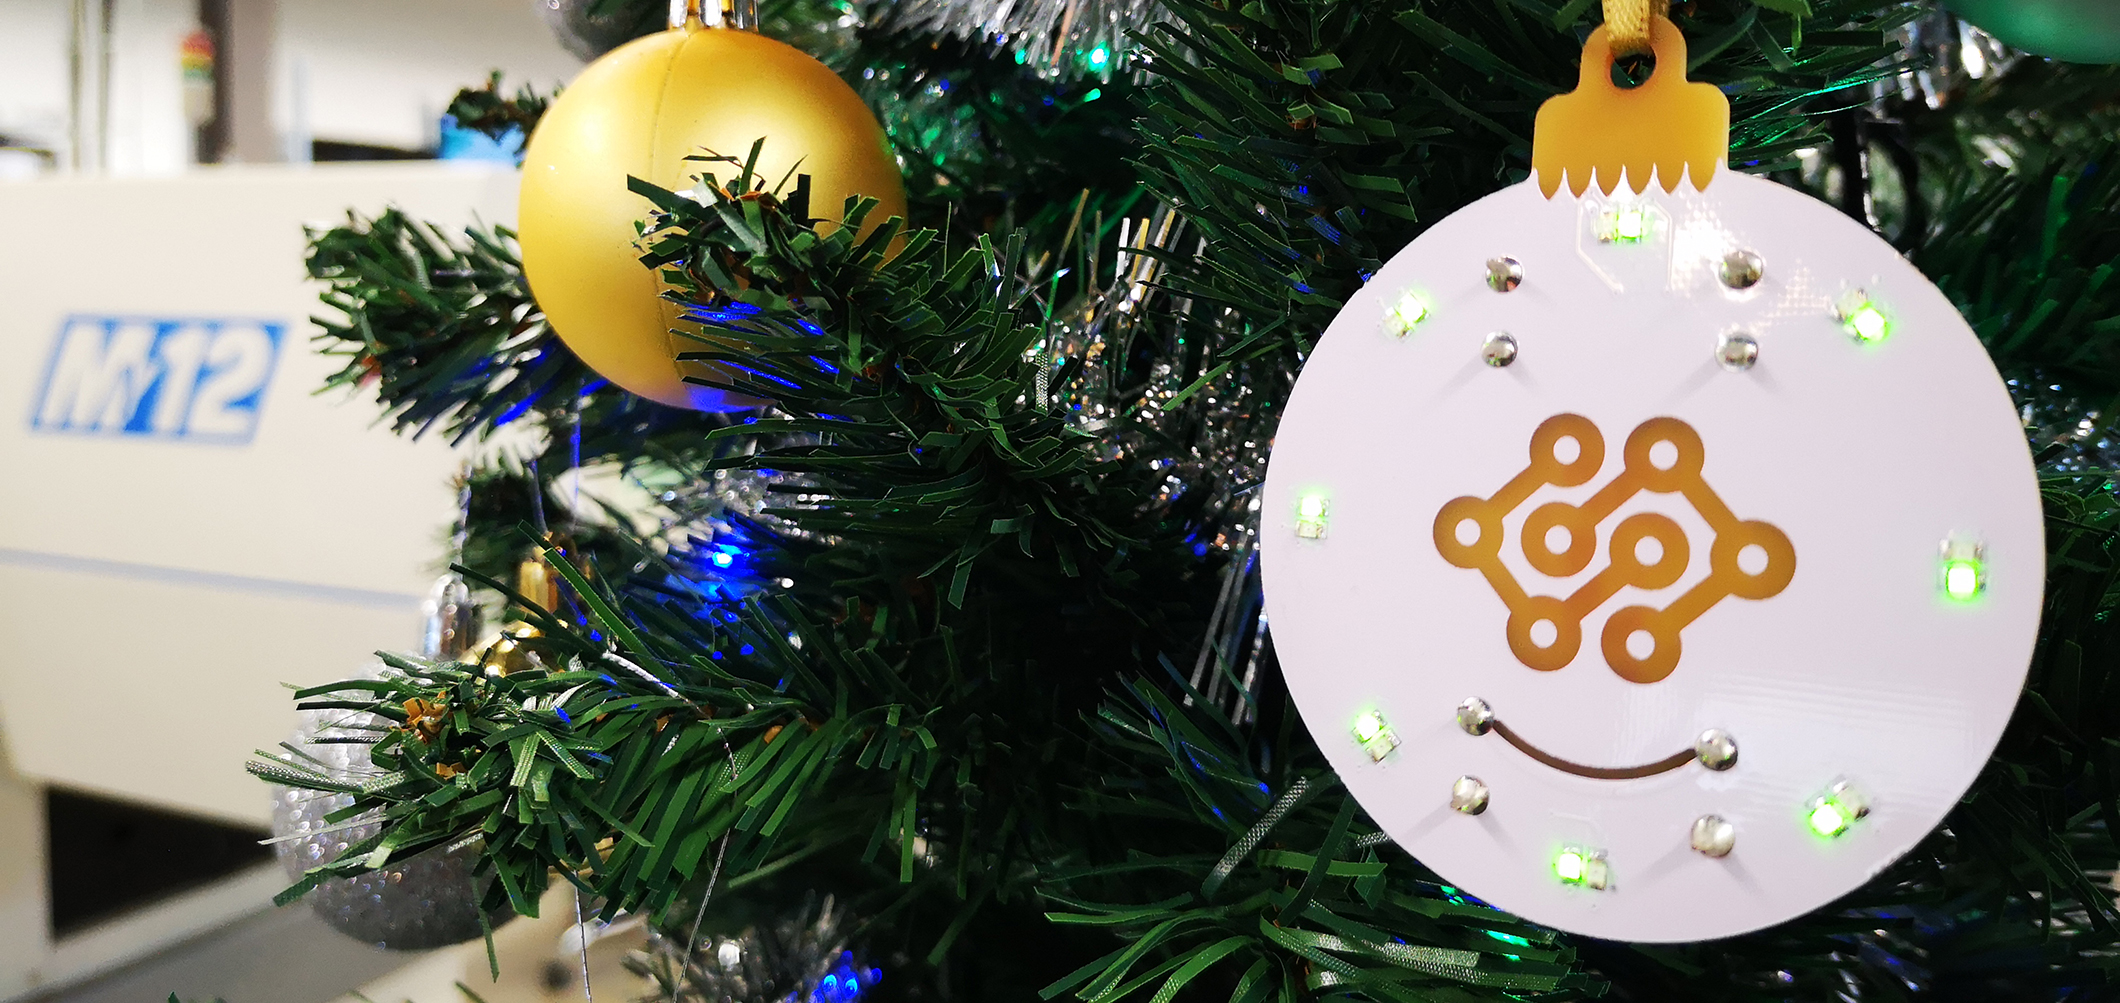 <h2>We are open during <br>Christmas Holidays</h2>